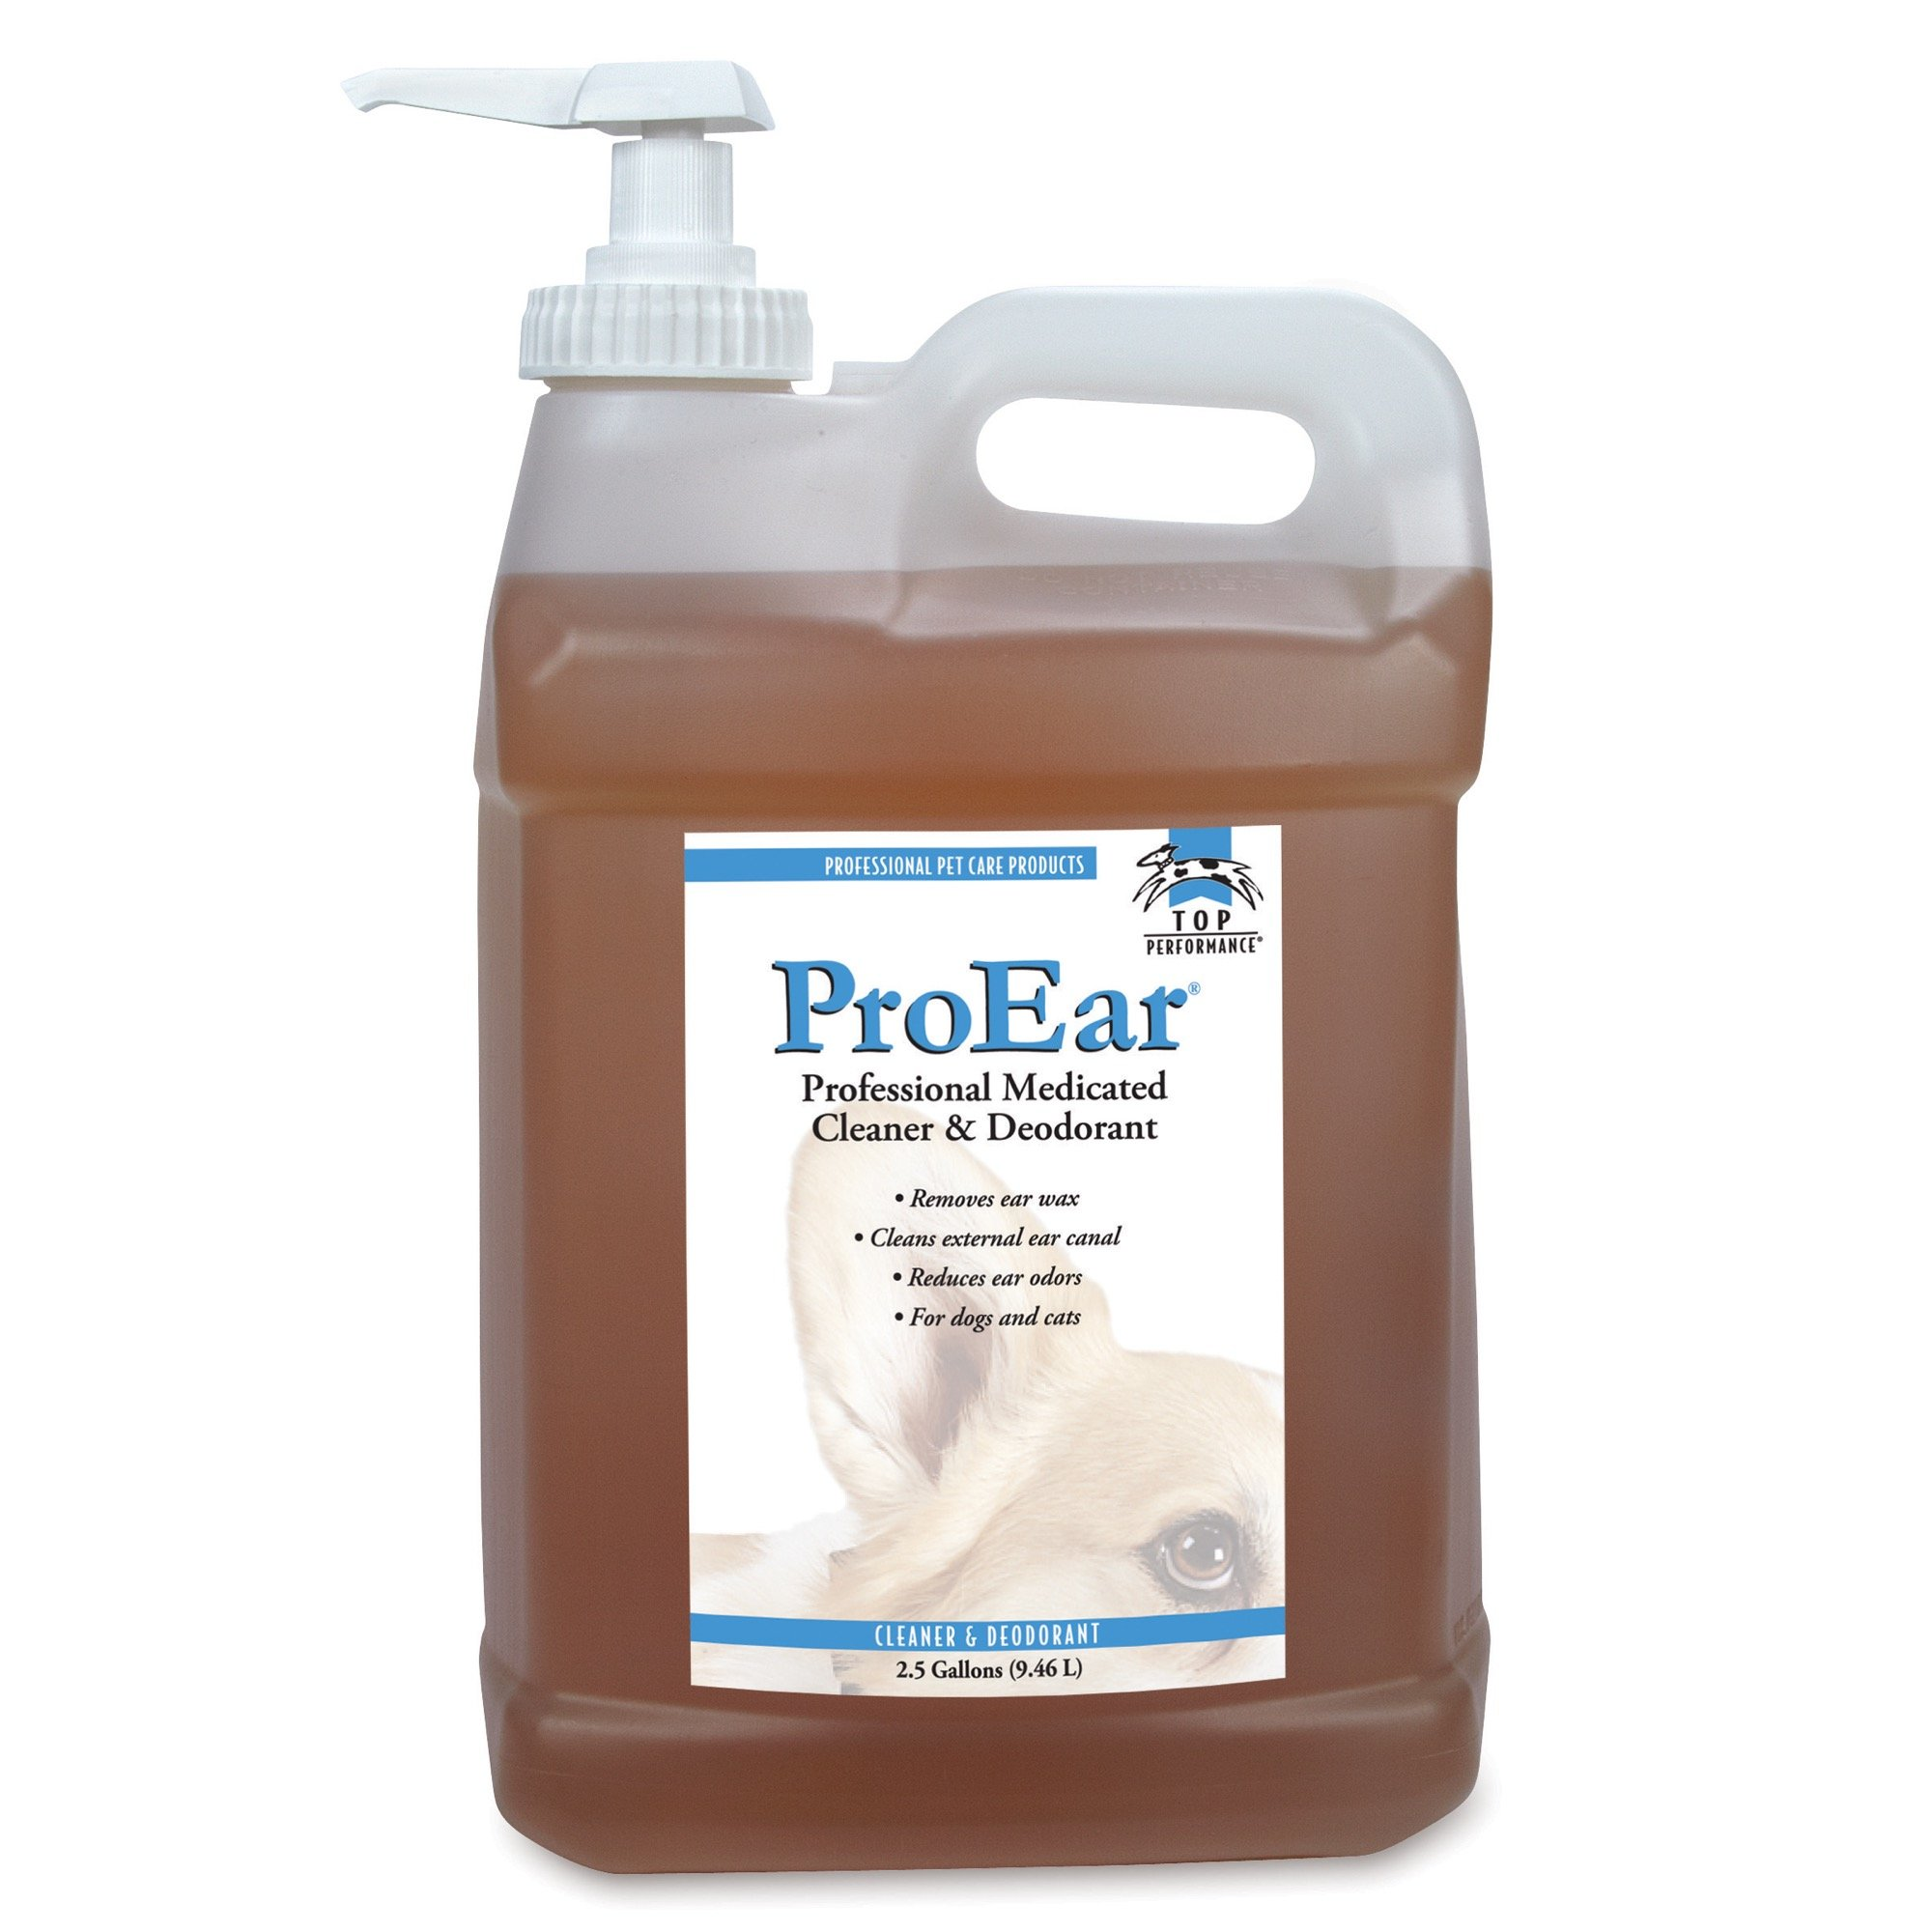 Top Performance ProEar Professional Medicated Ear Cleaners - Versatile and Effective Solution for Cleaning Dog and Cat Ears, 2½ Gallon by Top Performance